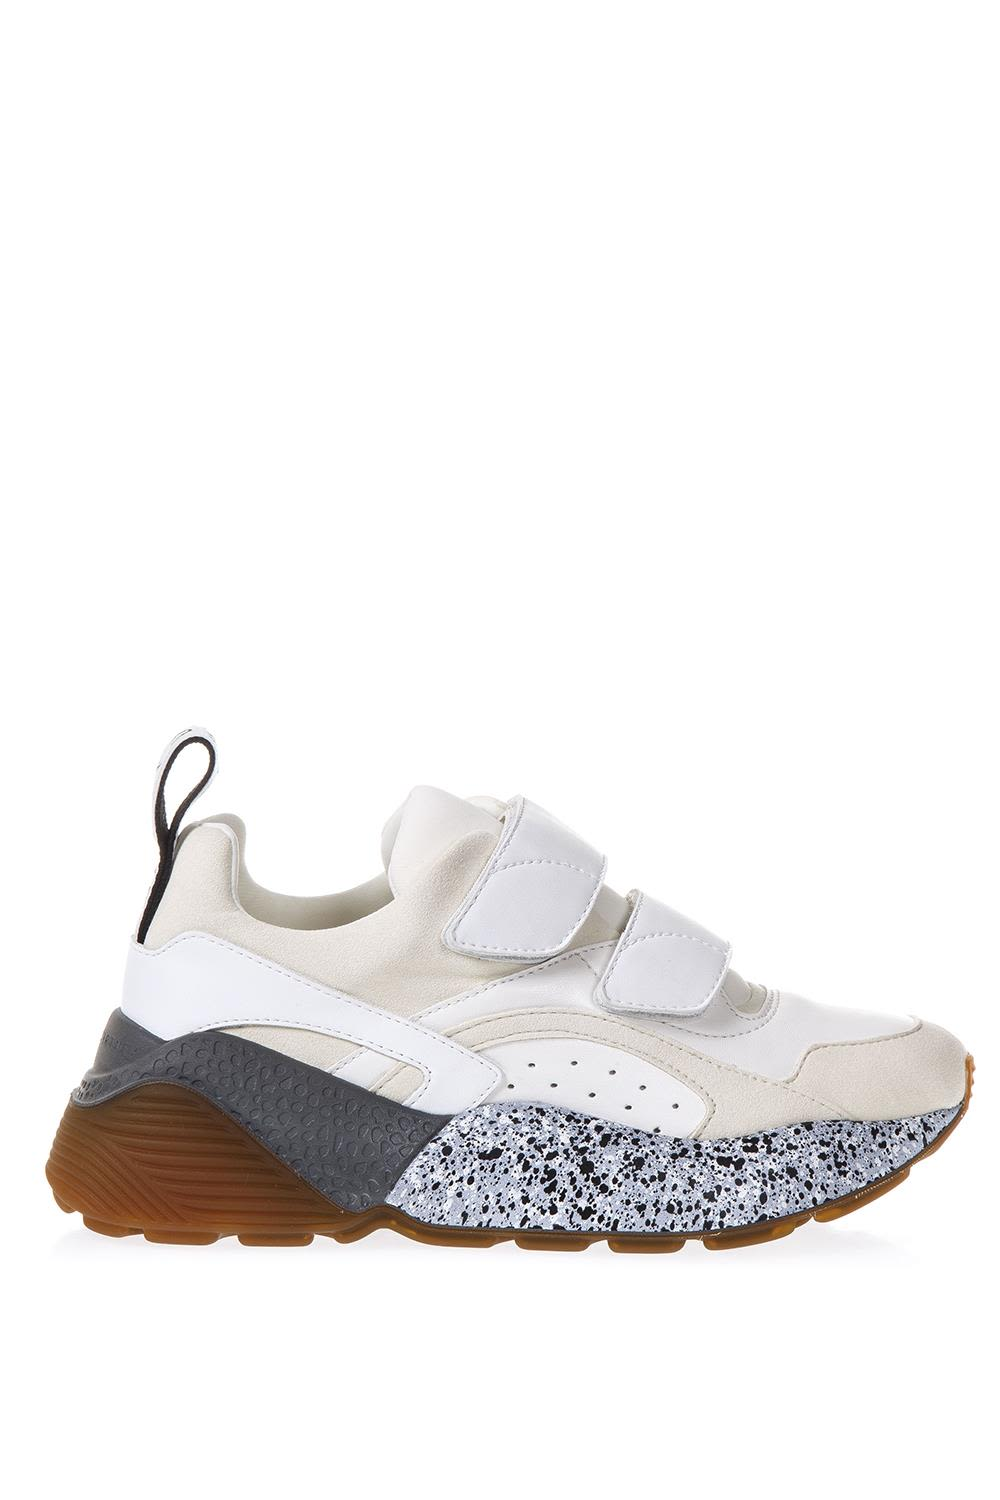 Stella McCartney Eclypse White Sneakers